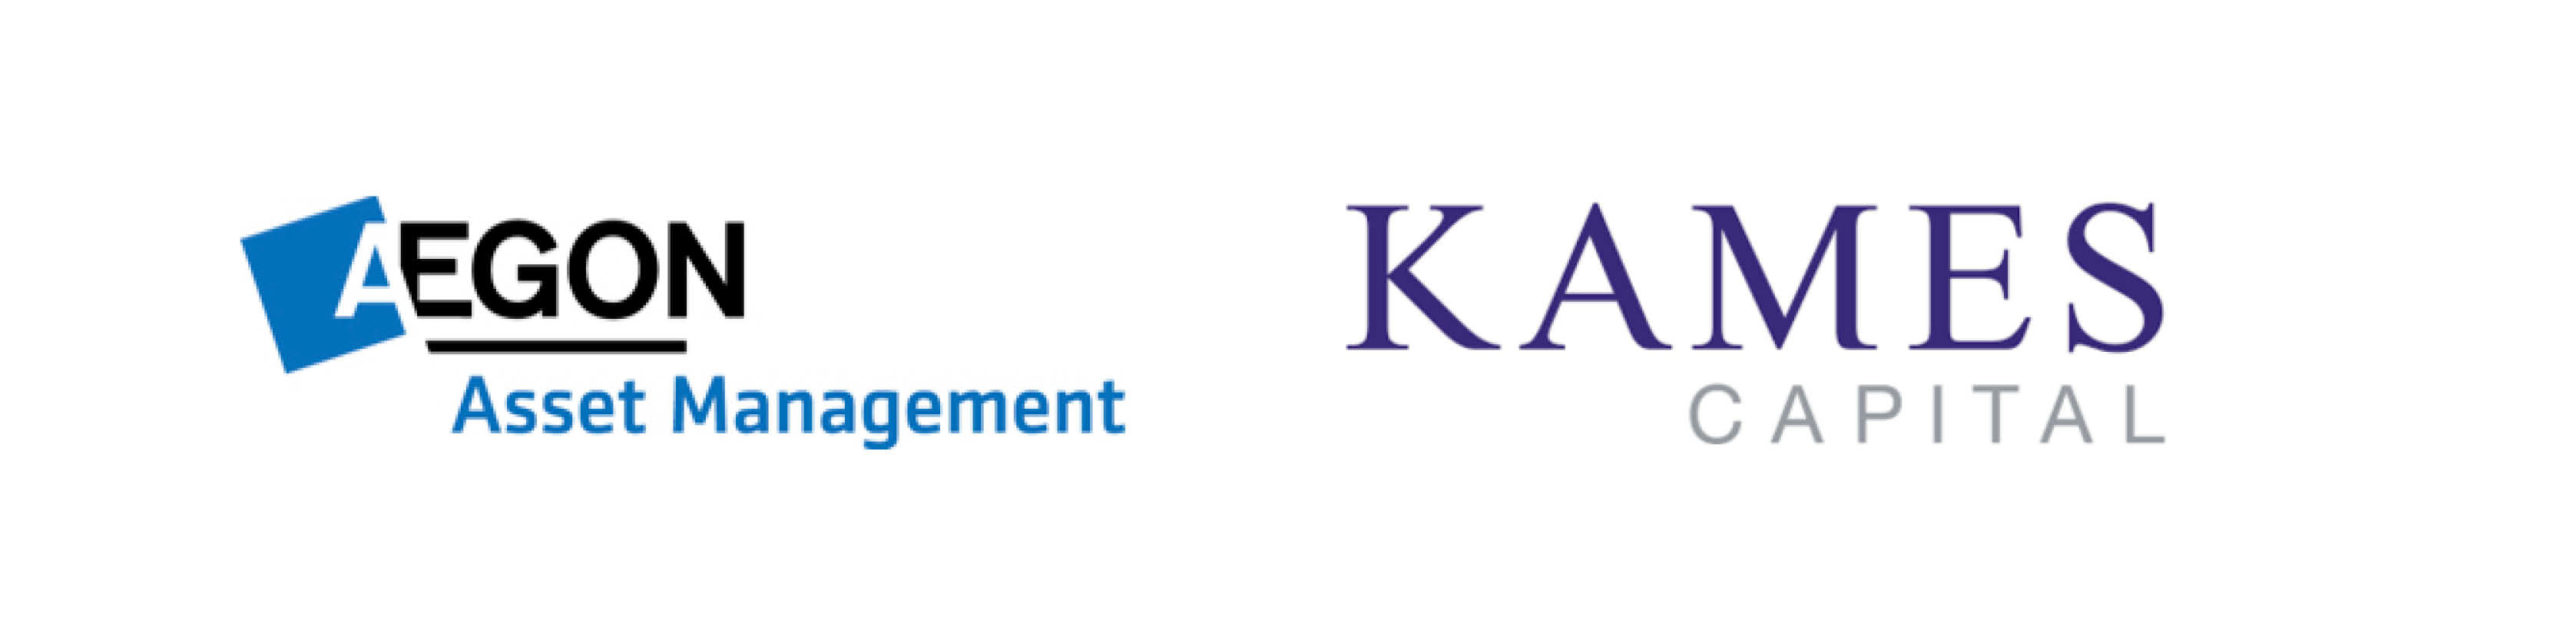 AEGON_Asset_Management_and_Kames_Capital_Logos